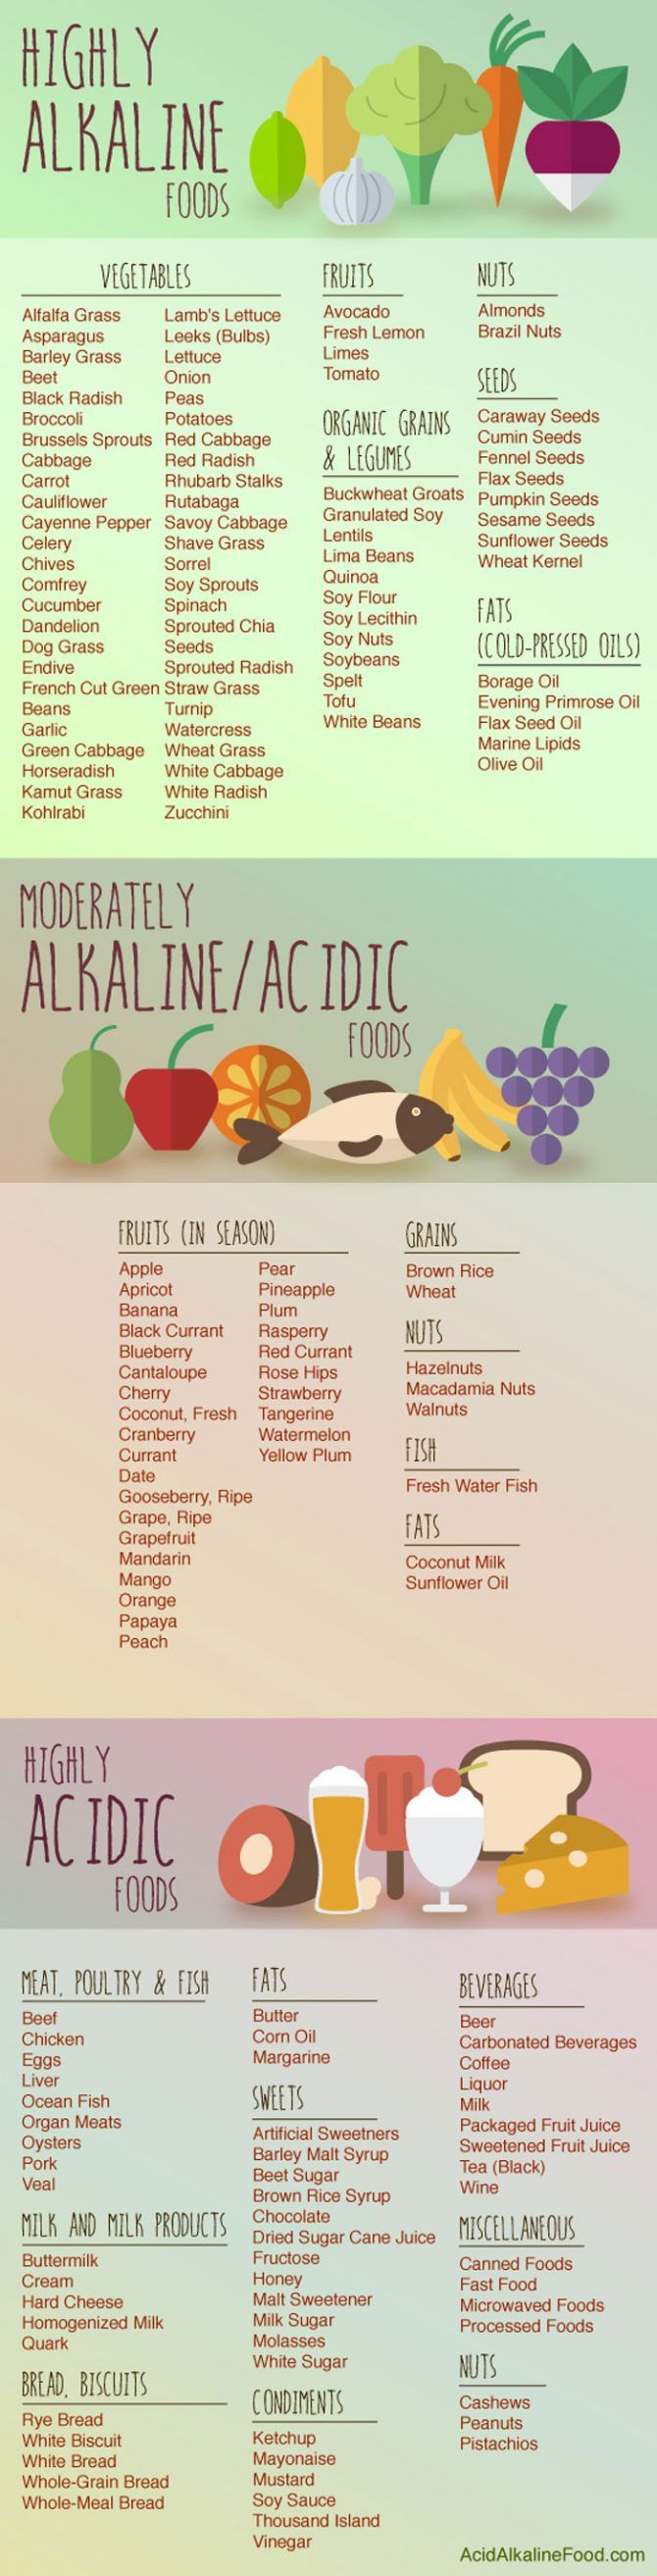 92 Alkaline Foods That Fight Cancer, Inflammation, Diabetes and Heart Disease…